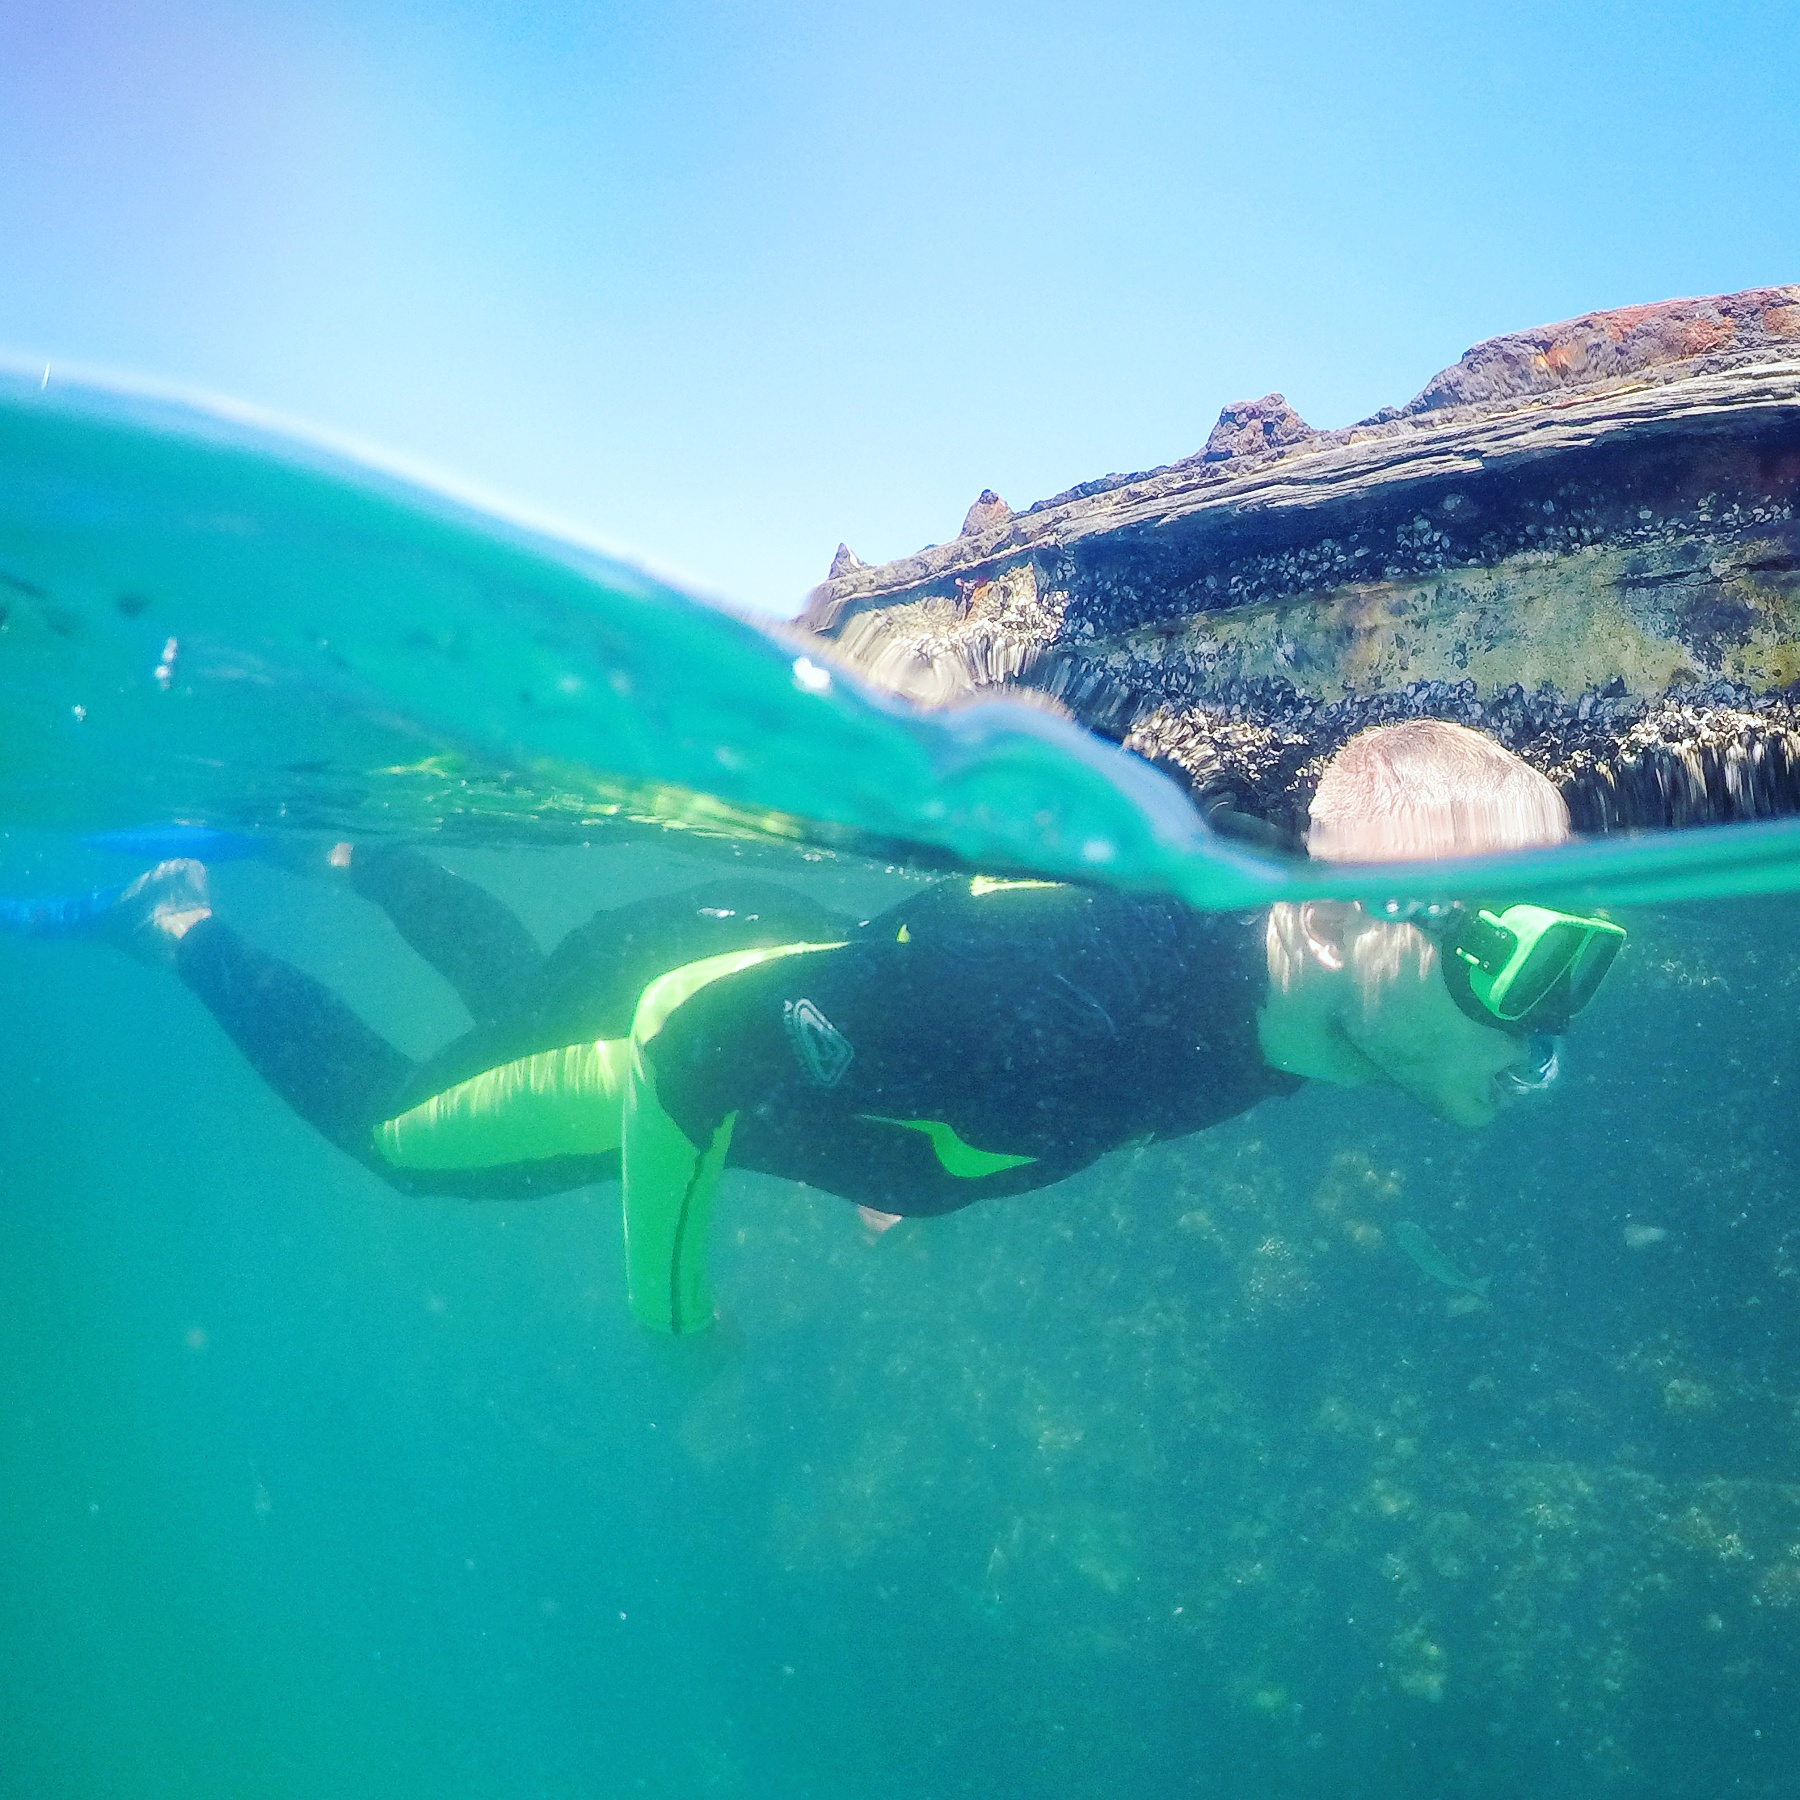 Snorkelling the Tangalooma Wrecks